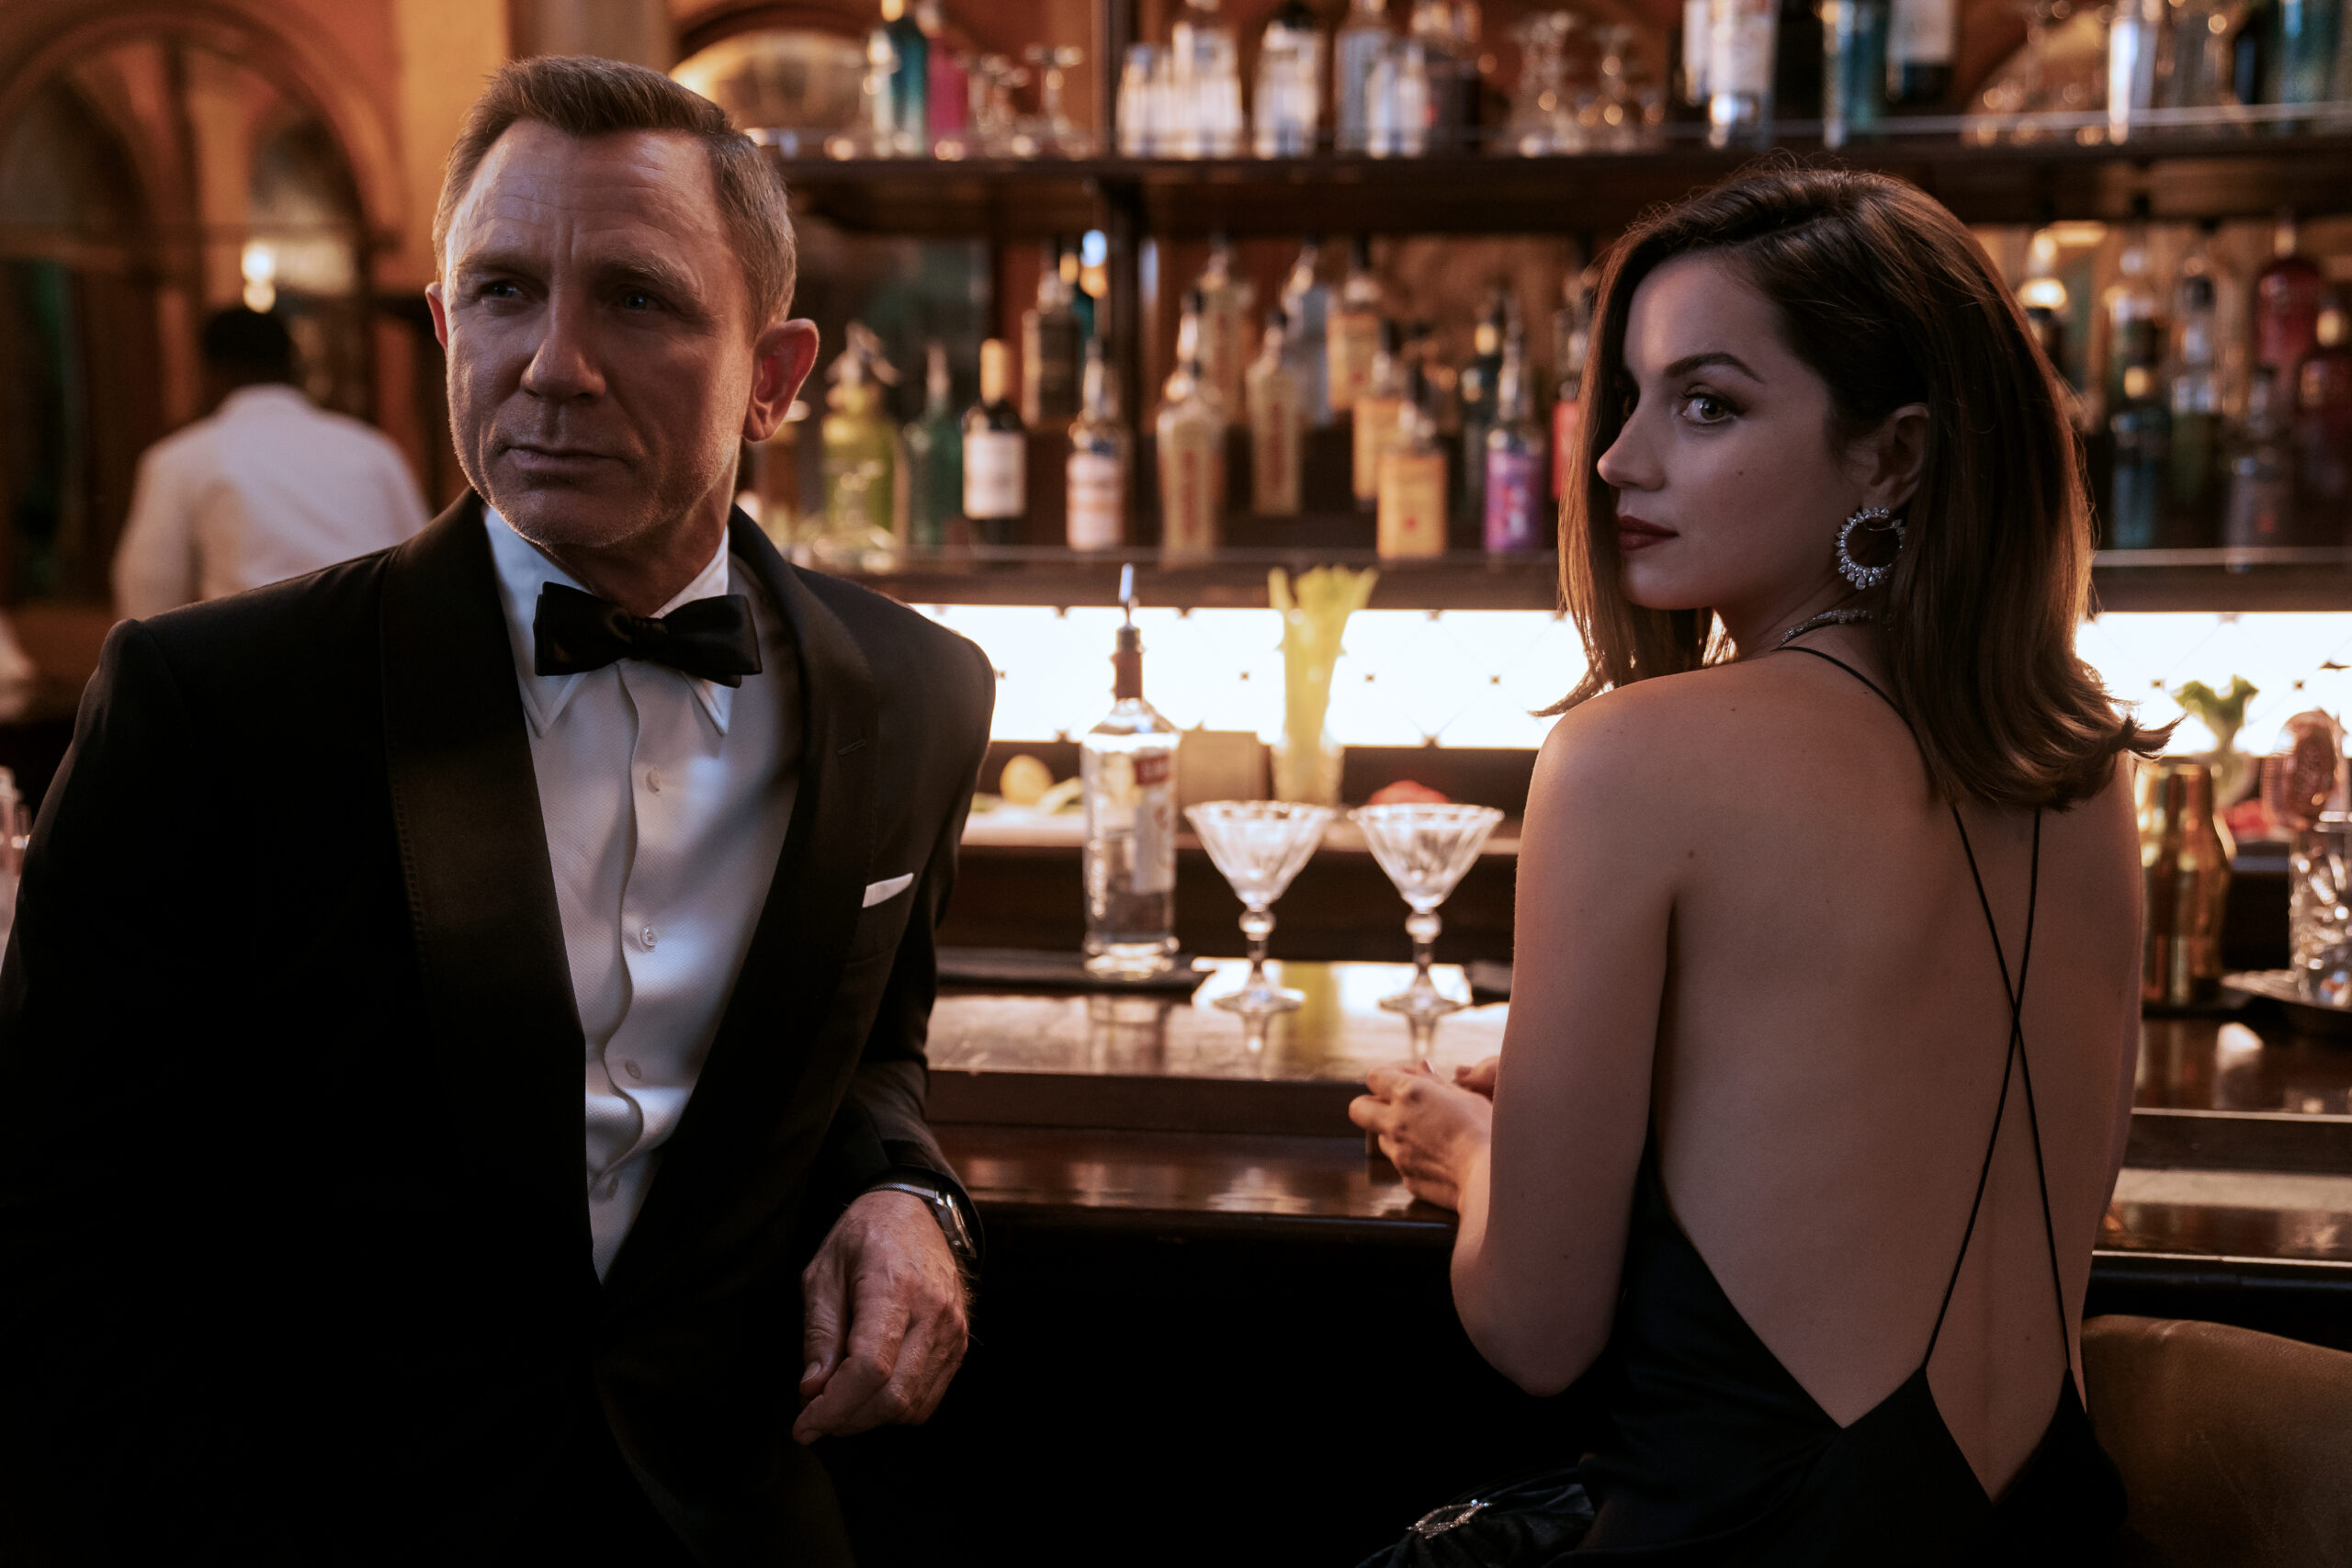 B25_39456_RC2 James Bond (Daniel Craig) and Paloma (Ana de Armas) in NO TIME TO DIE,  an EON Productions and Metro-Goldwyn-Mayer Studios film Credit: Nicola Dove © 2020 DANJAQ, LLC AND MGM.  ALL RIGHTS RESERVED.